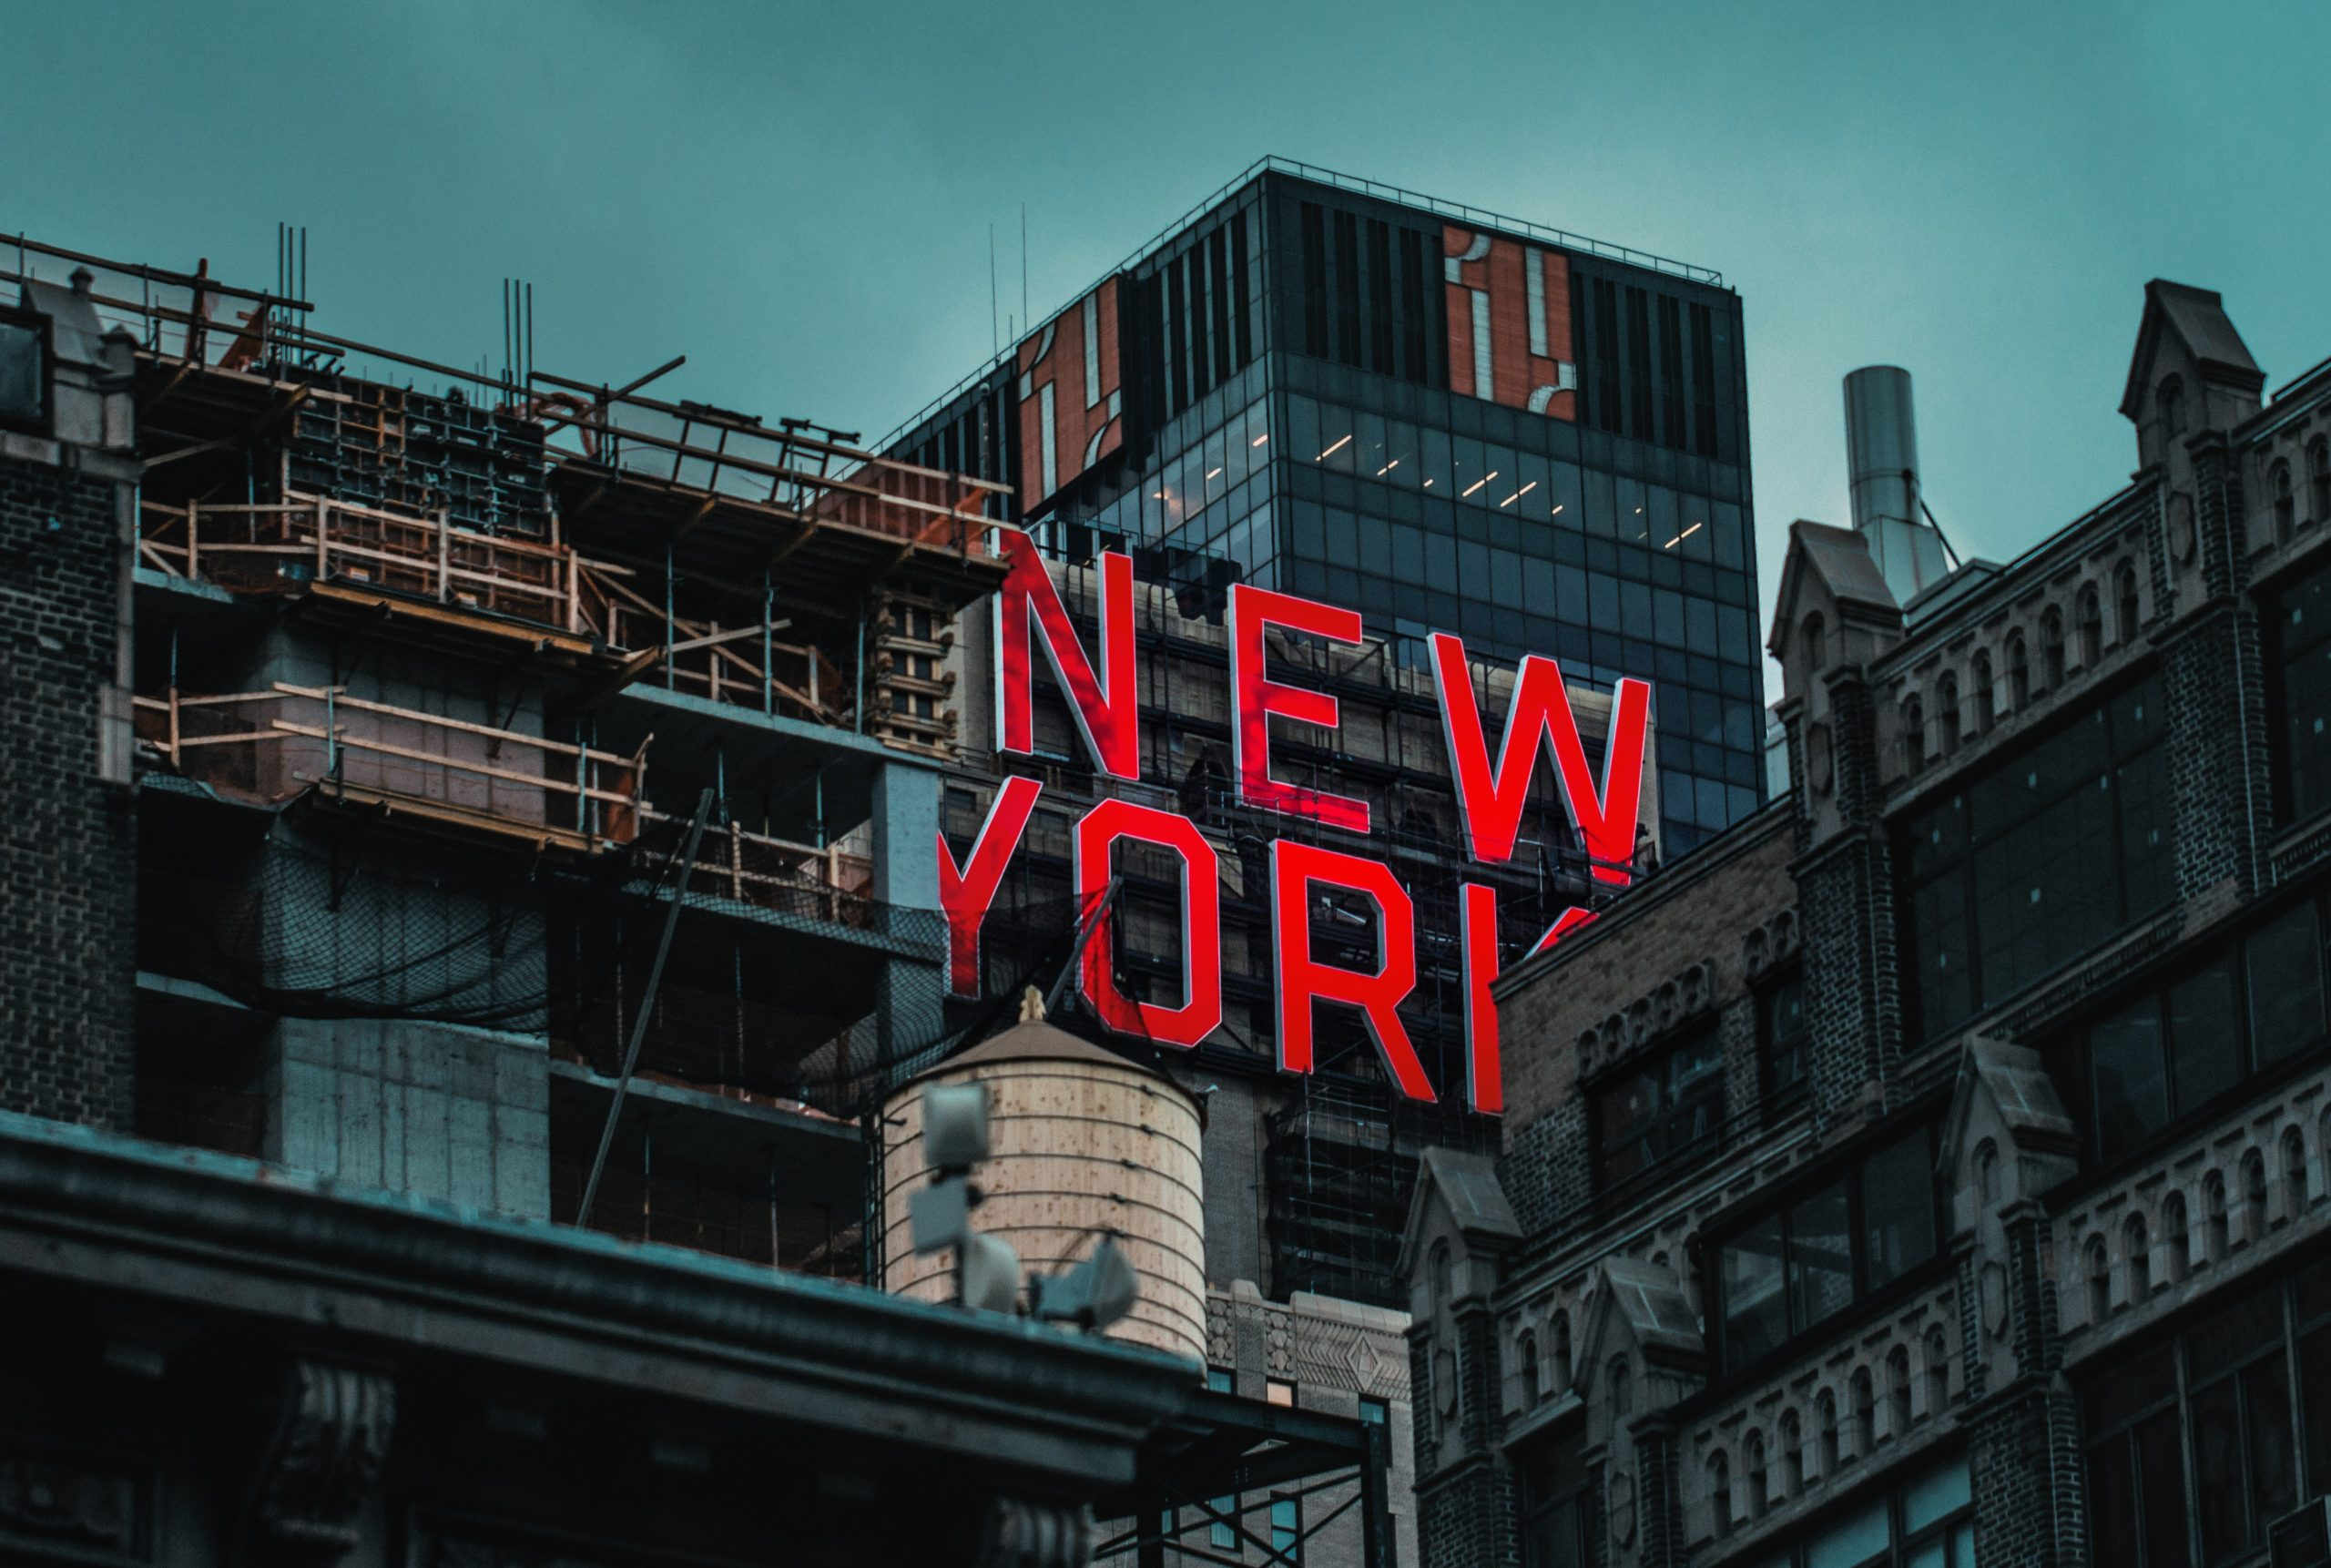 An ode to New York City